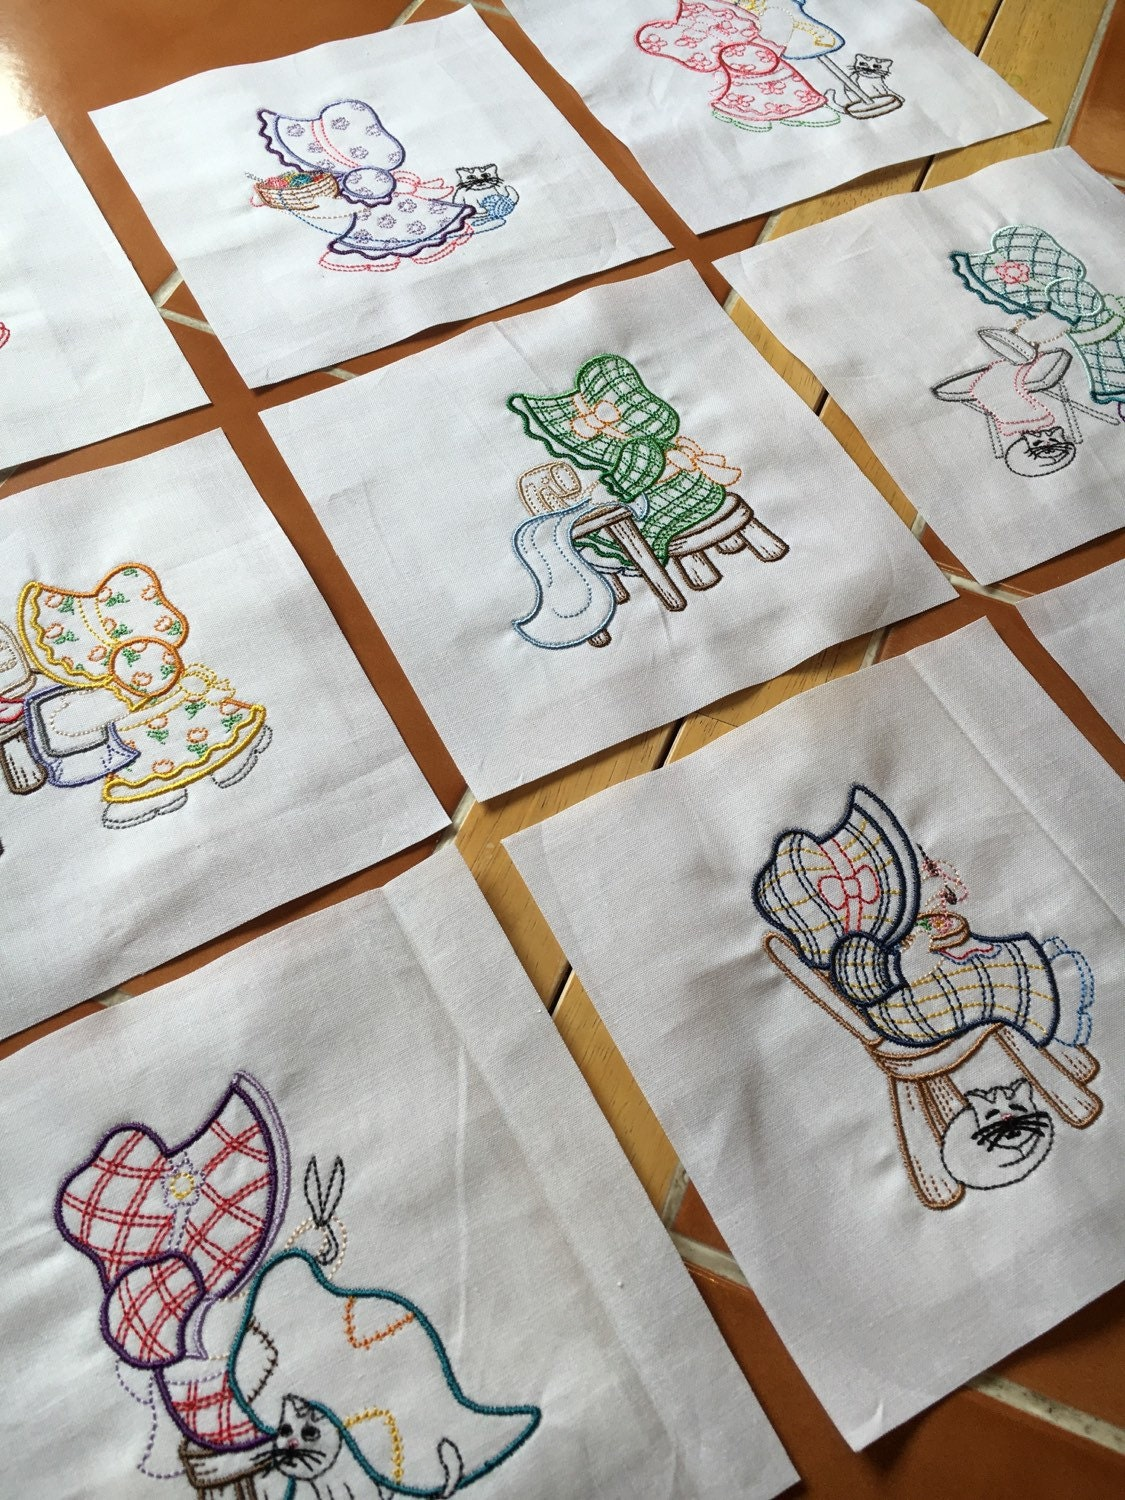 Sunbonnet sue sews embroidered quilt blocks ready to sew